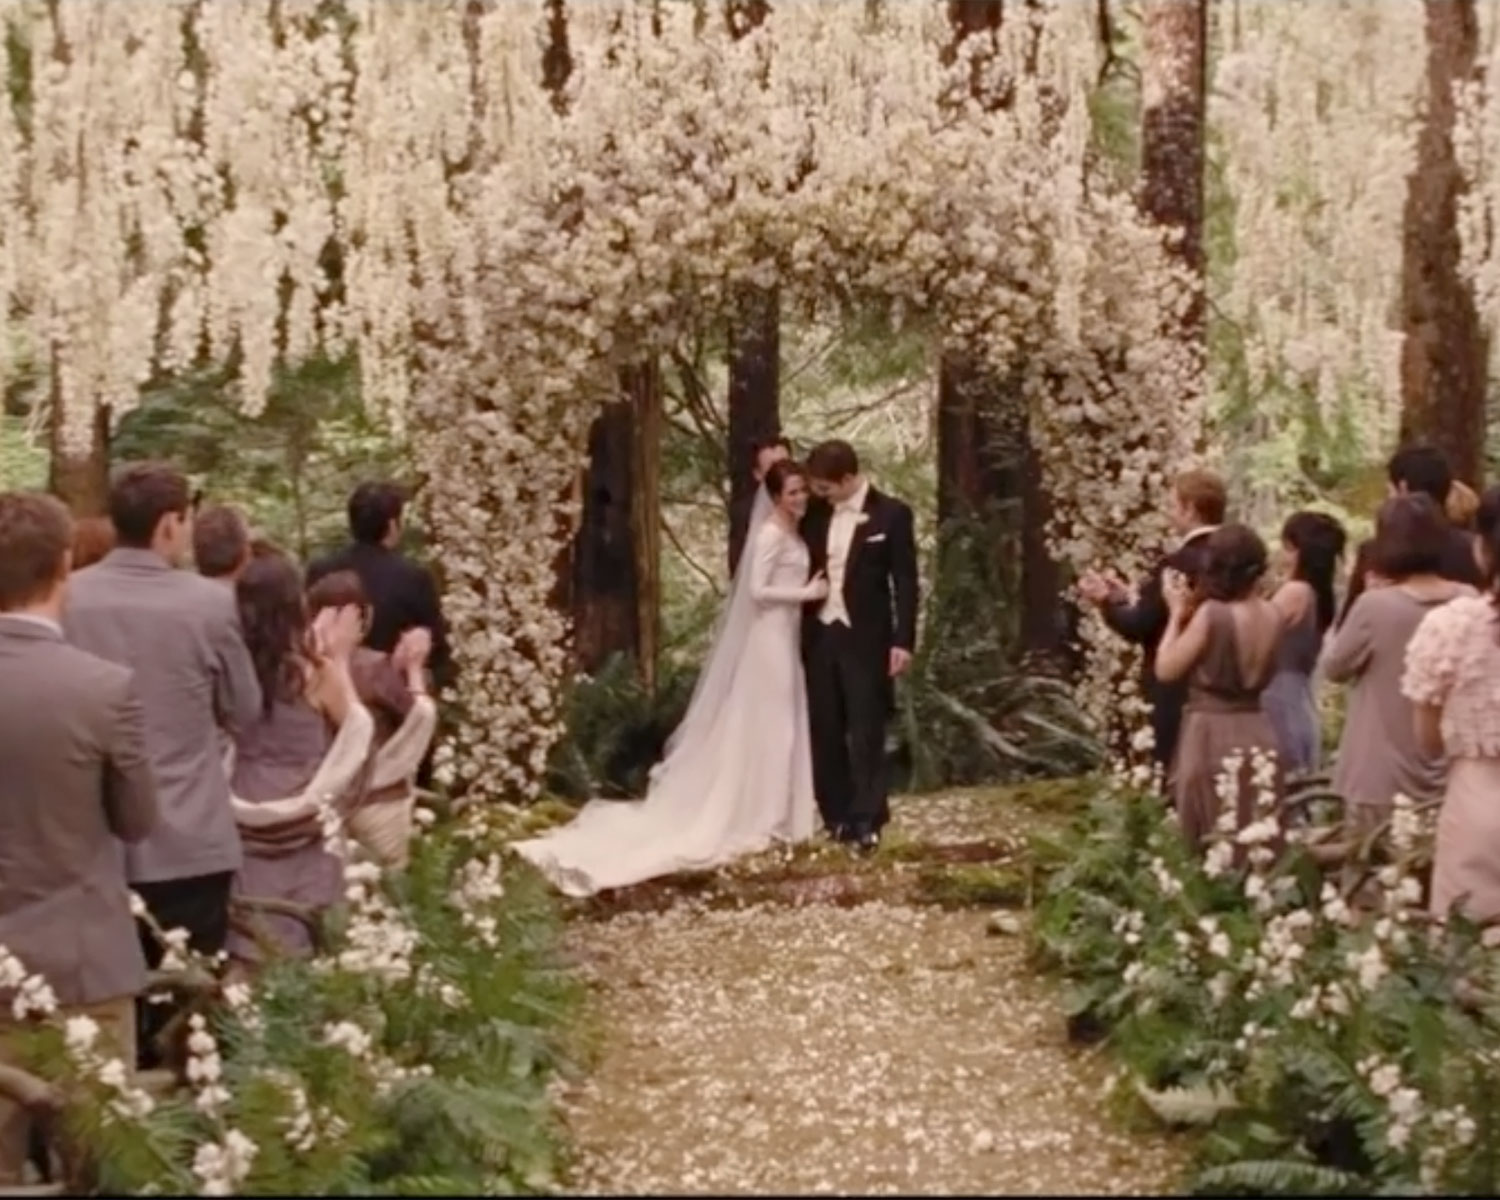 edward and bella wedding ceremony wwwimgkidcom the